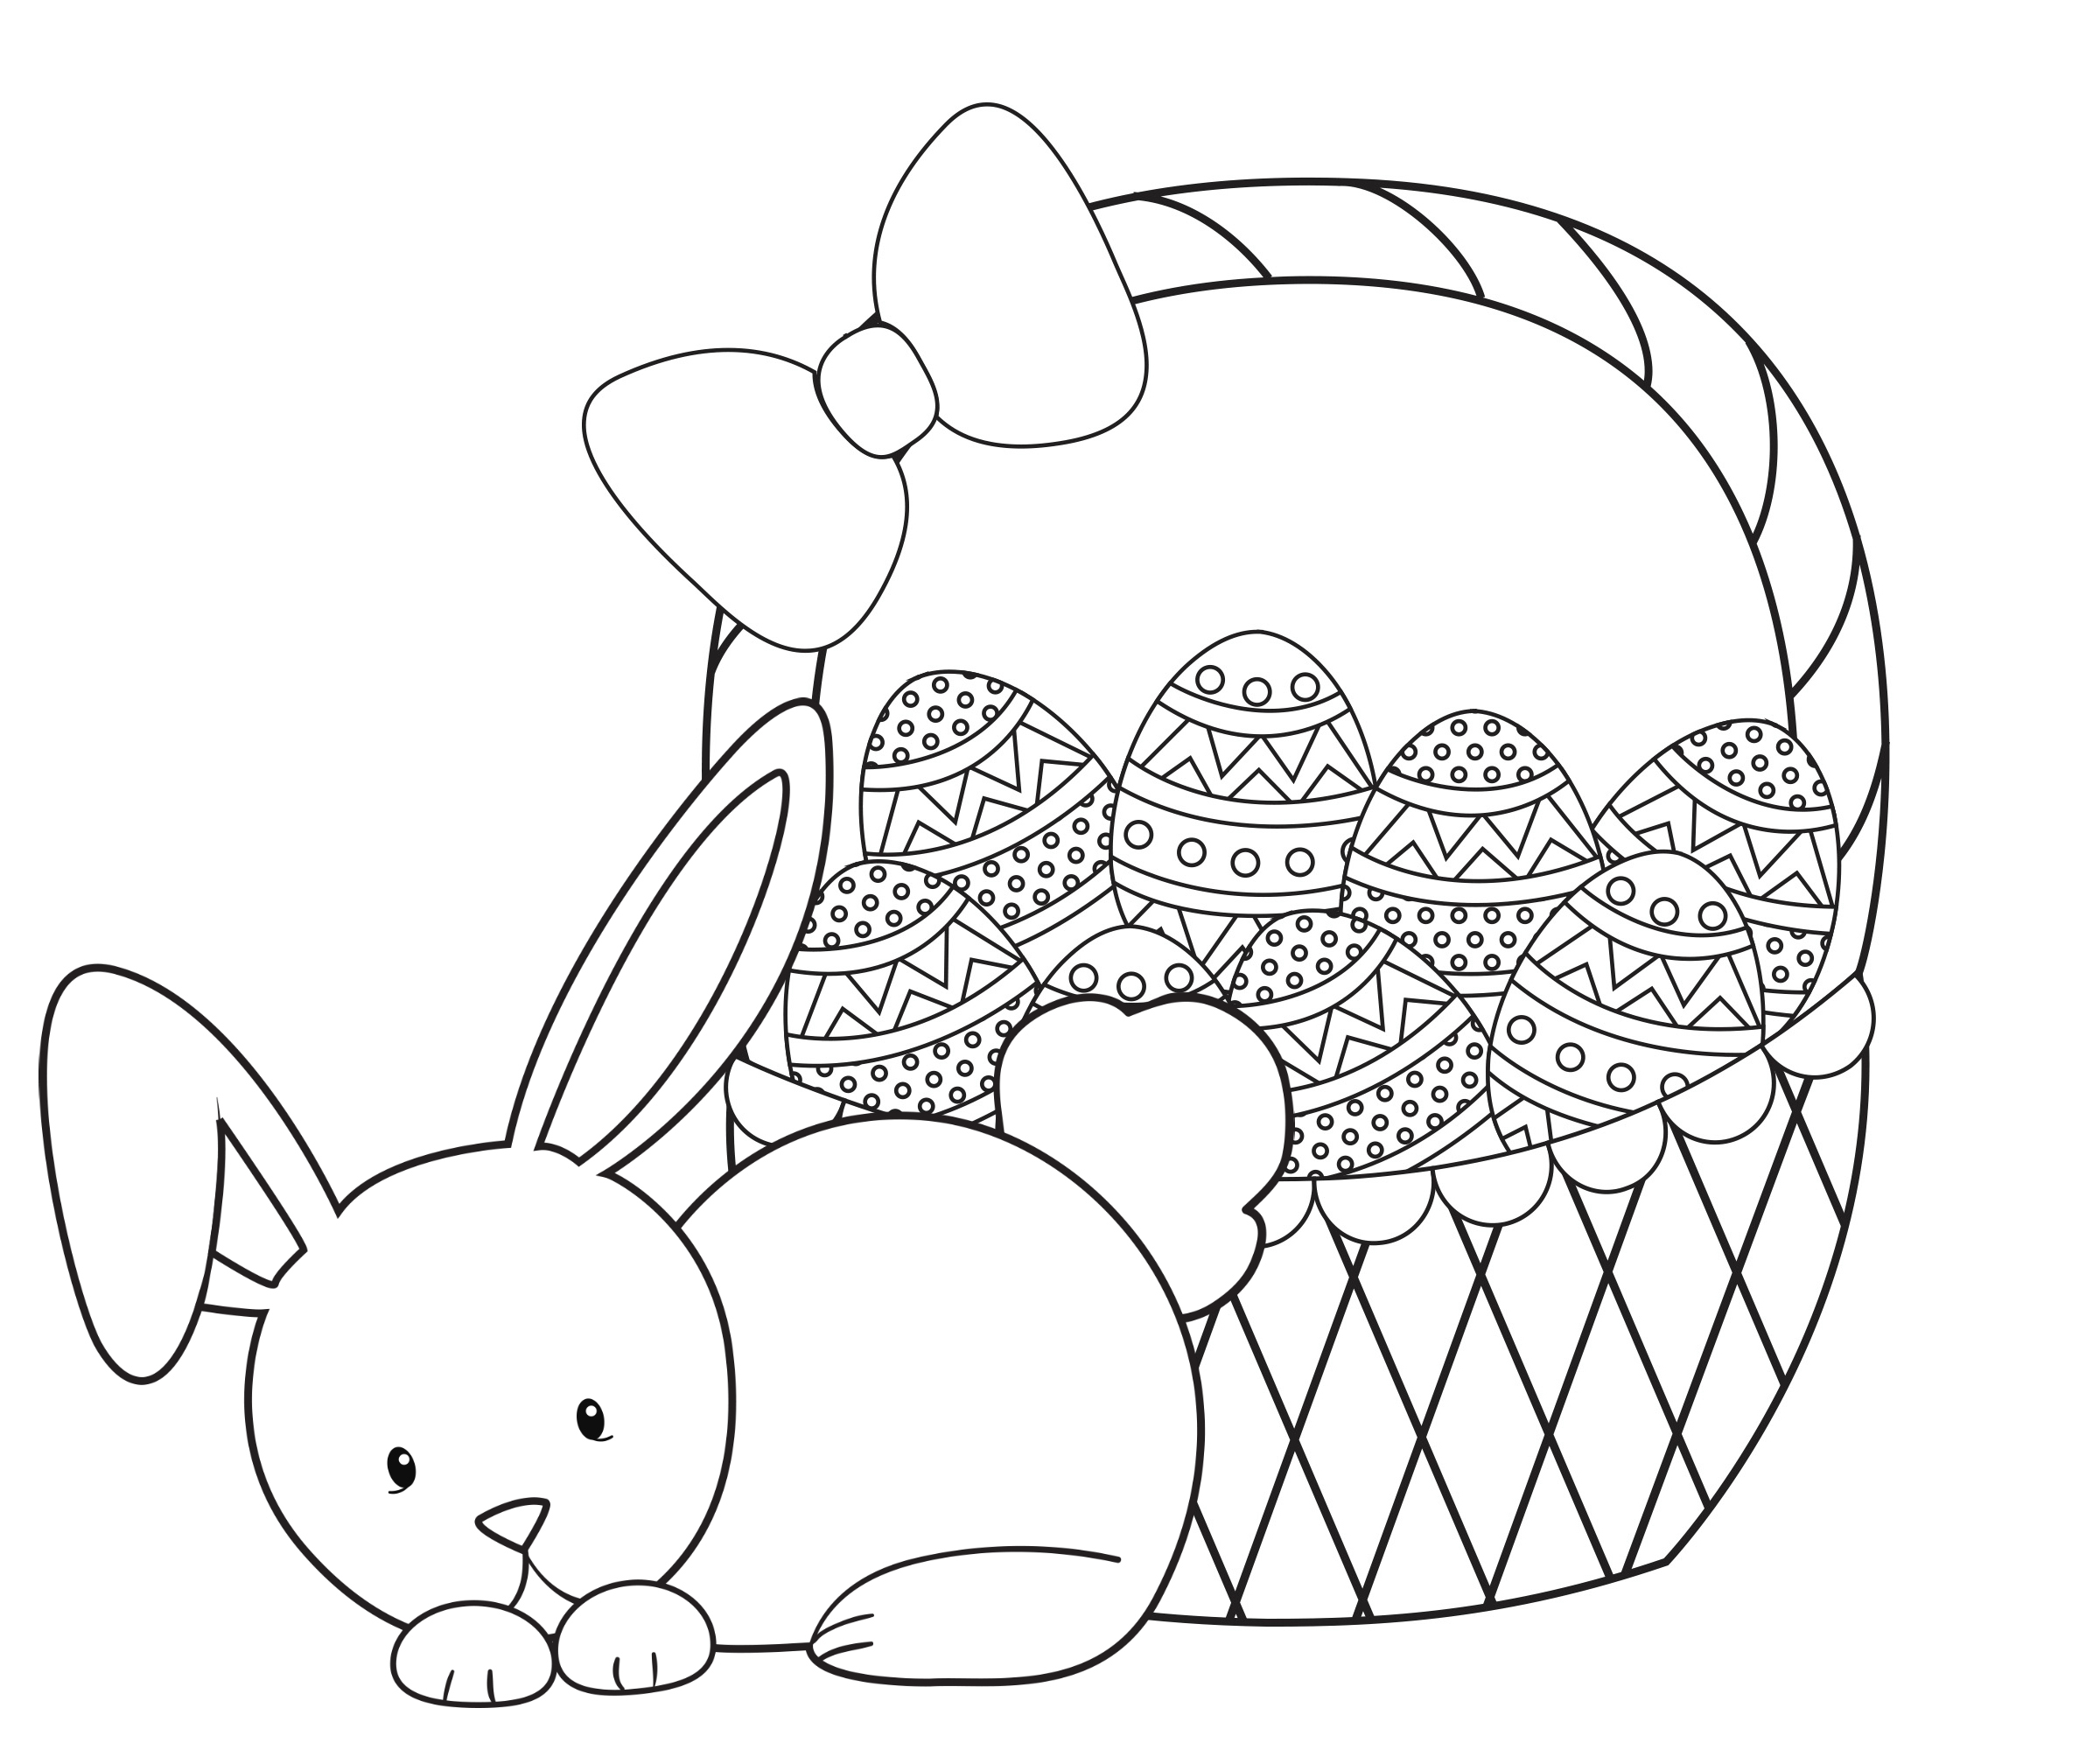 easter coloring pages for toddlers Easter Coloring Pages for Kids   Crazy Little Projects easter coloring pages for toddlers